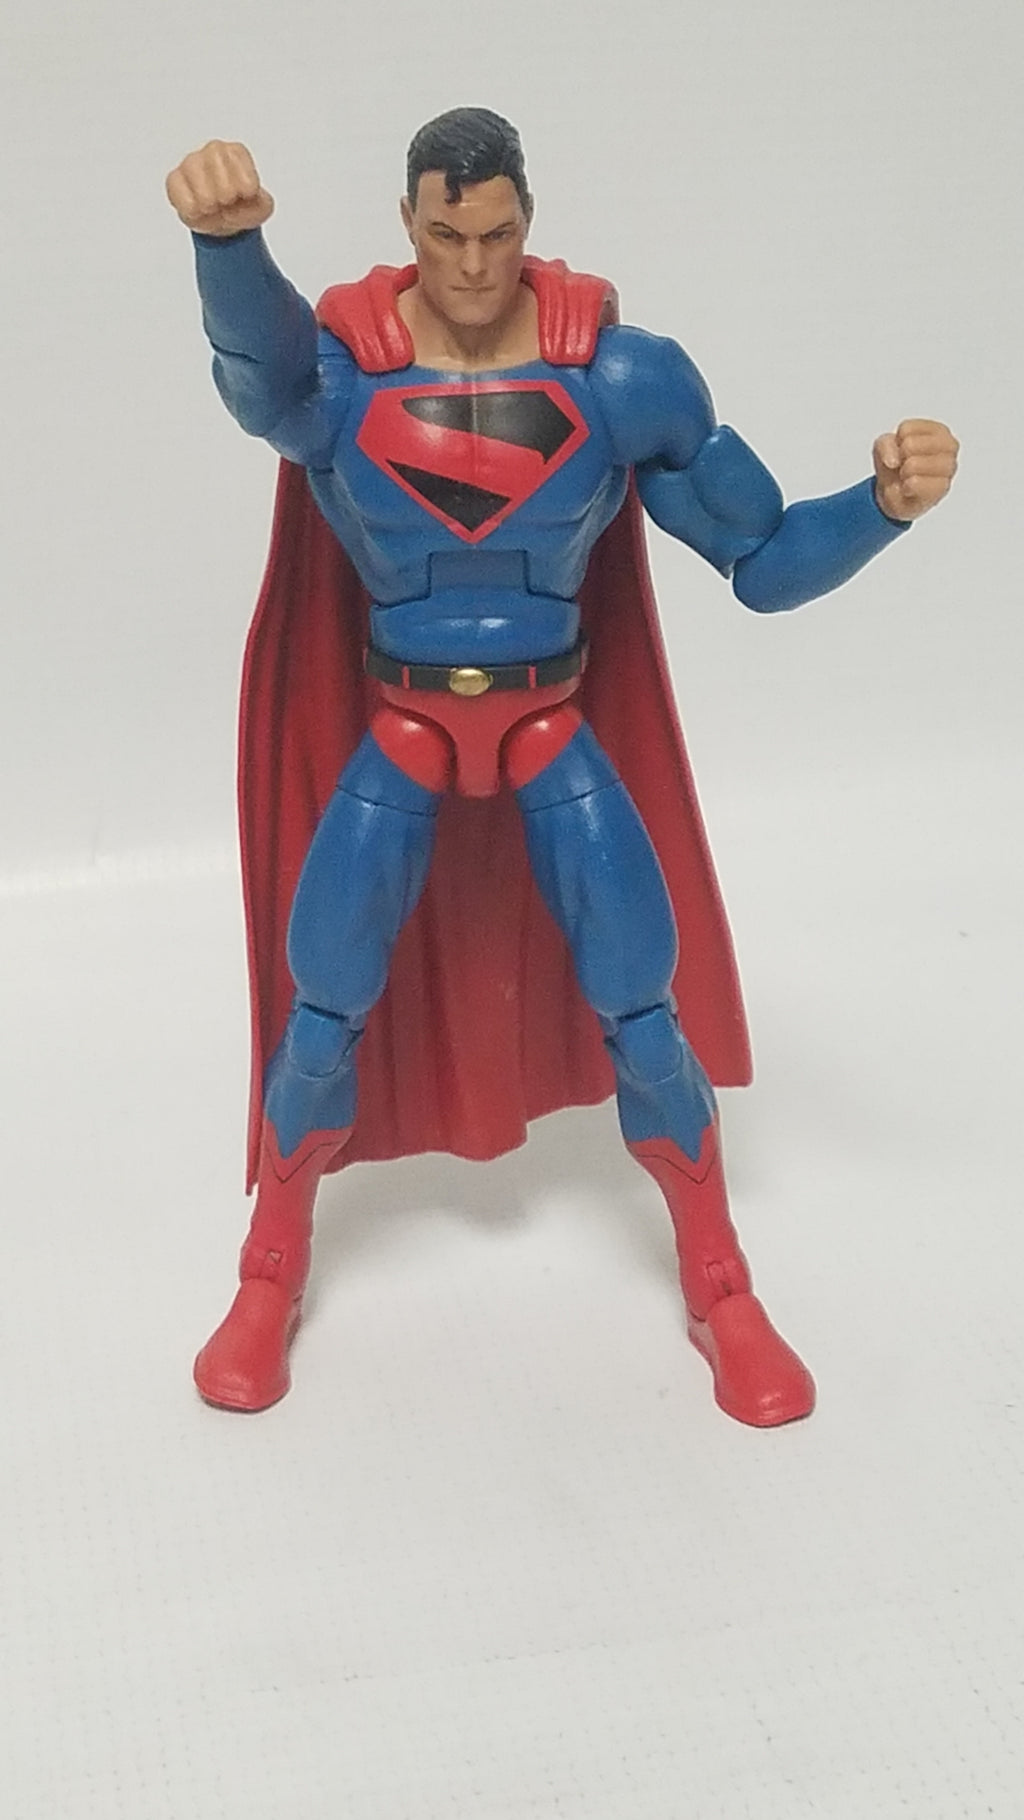 MATTEL DC Multiverse Kingdom Come Superman, Lobo CAC Wave